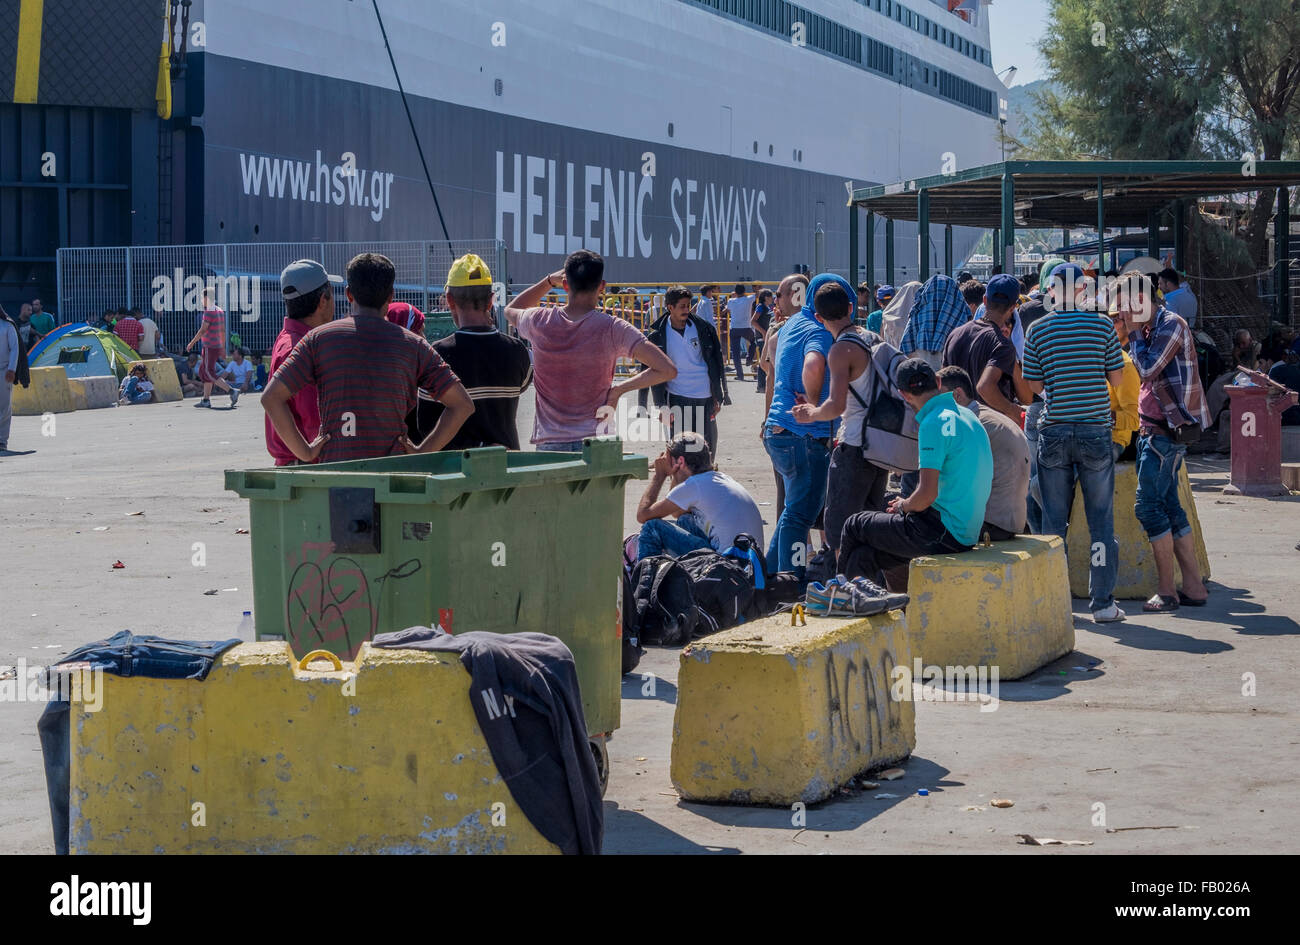 Refugees From Syria And Afghanistan Wait To Board A Greek Ferry